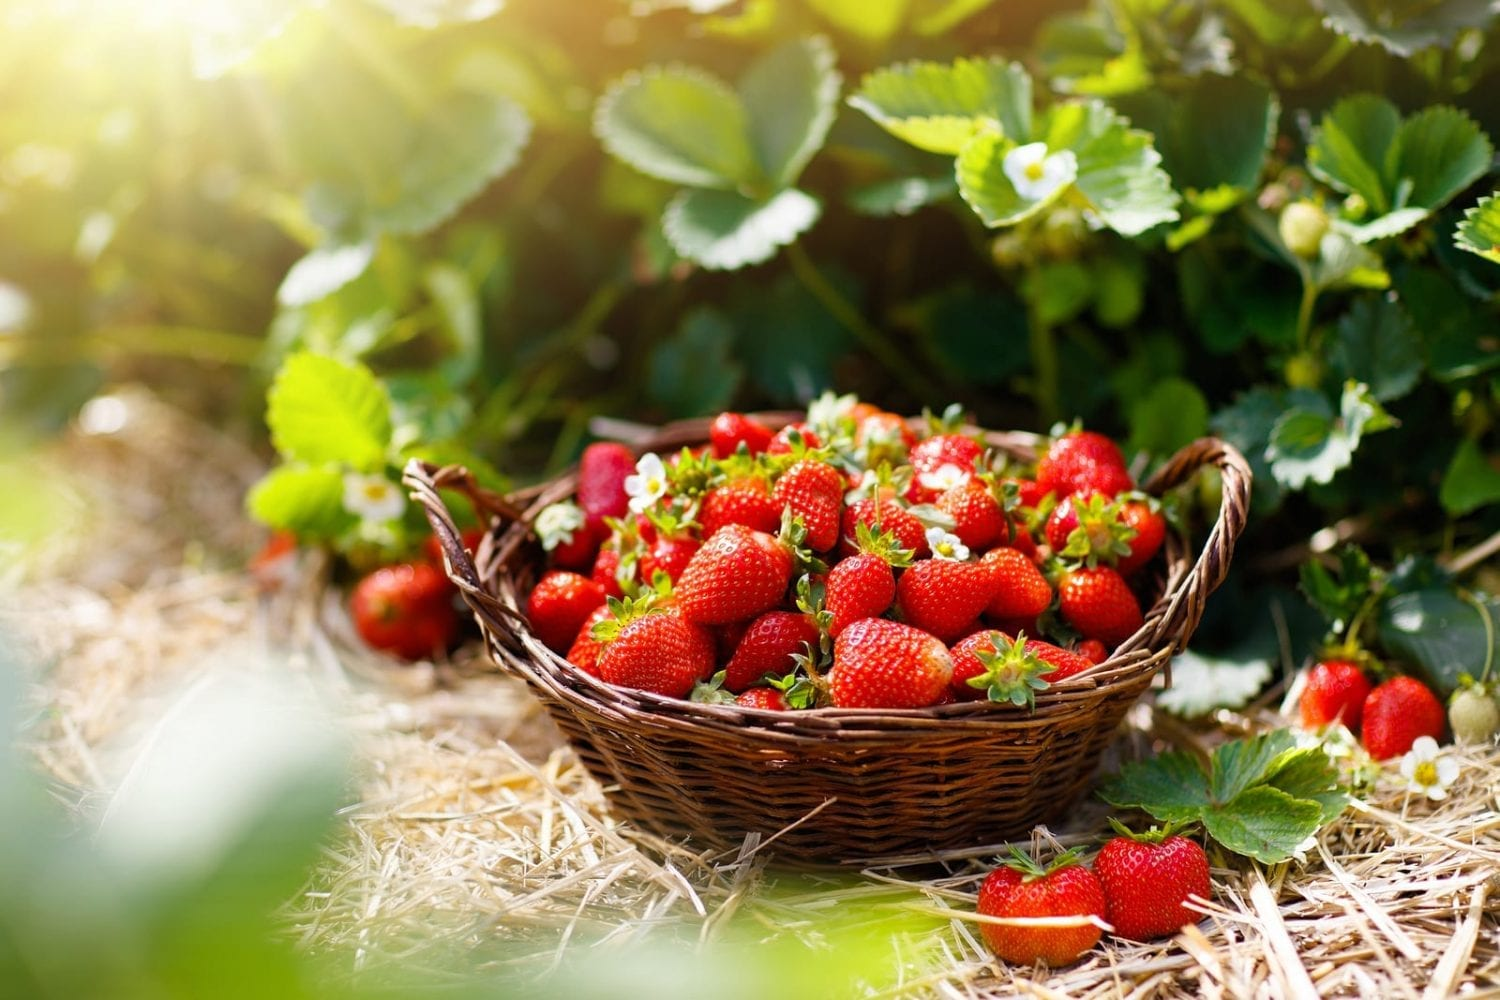 Foraging For Beginners: Why Bother Foraging?